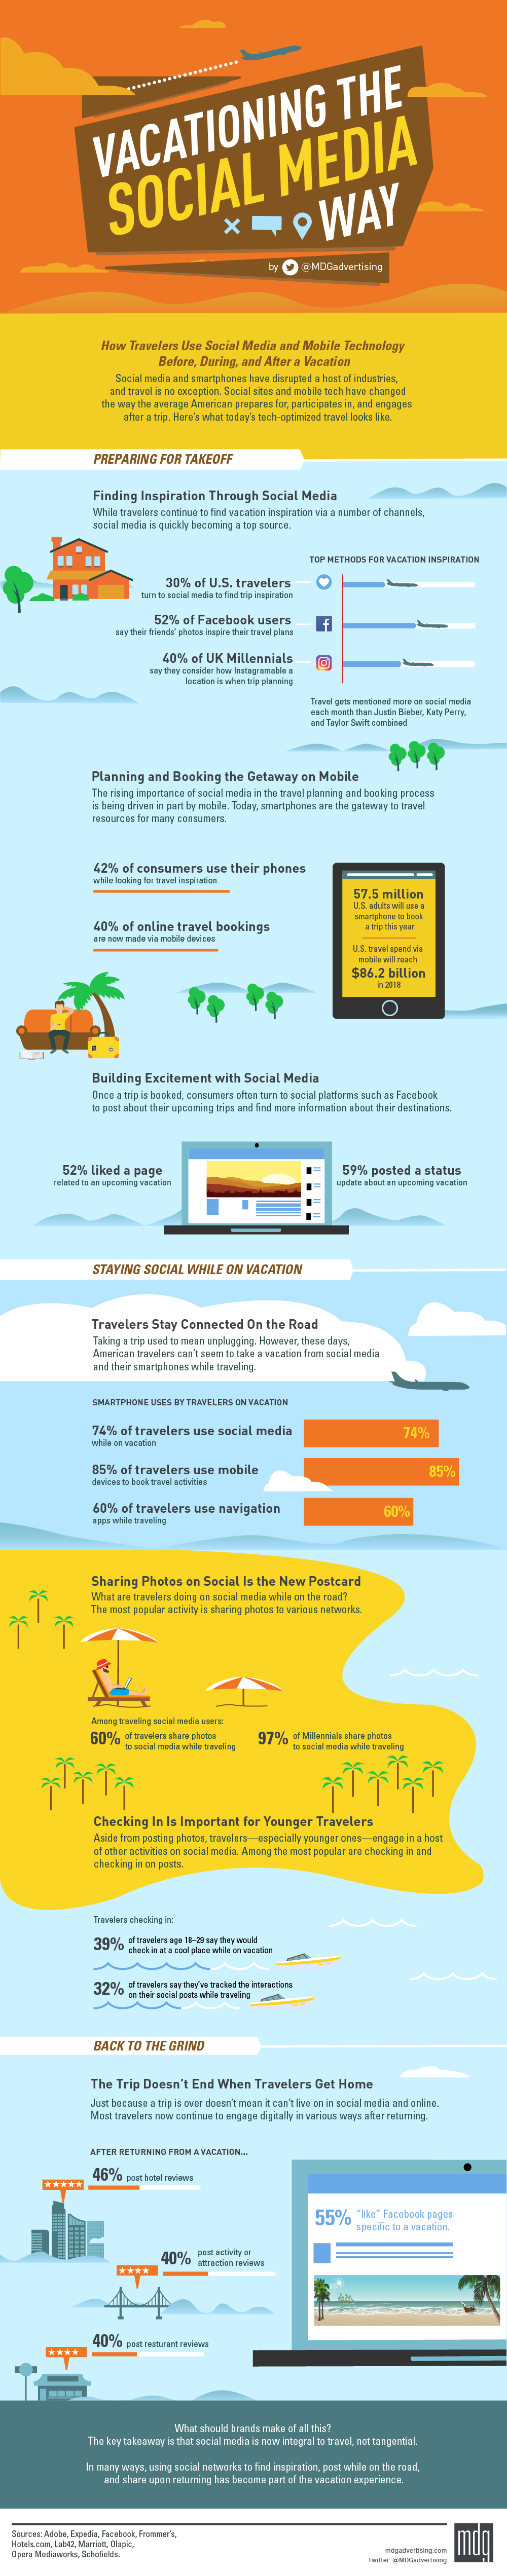 Go Via Trip Planner Vacationing The Social Media Way Infographic Mdg Advertising